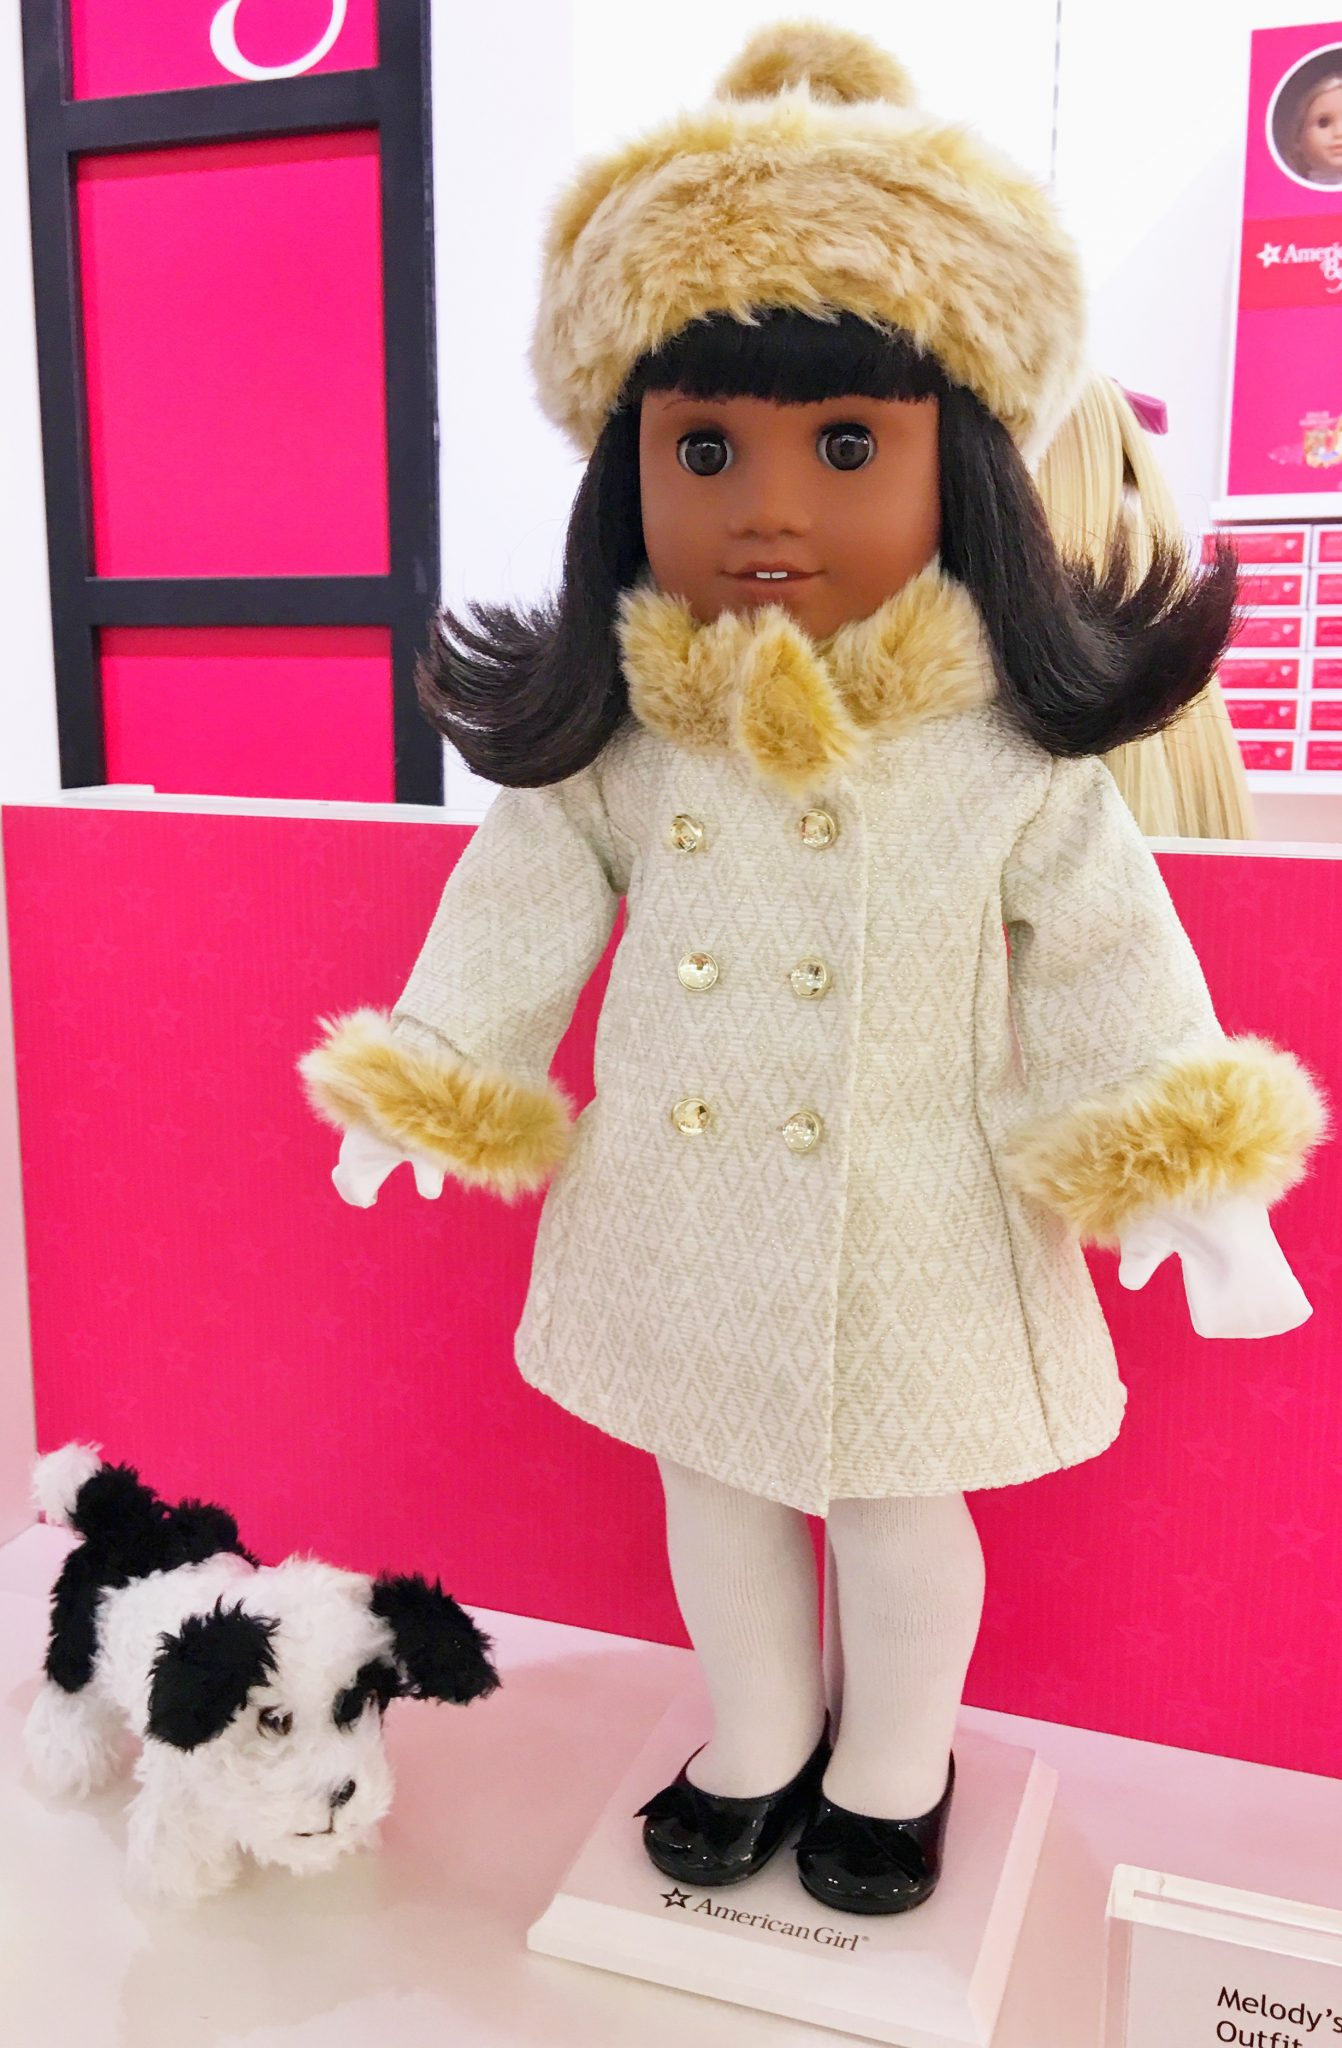 Melody Fancy Coat Outfit American Girl at Washington Square Mall